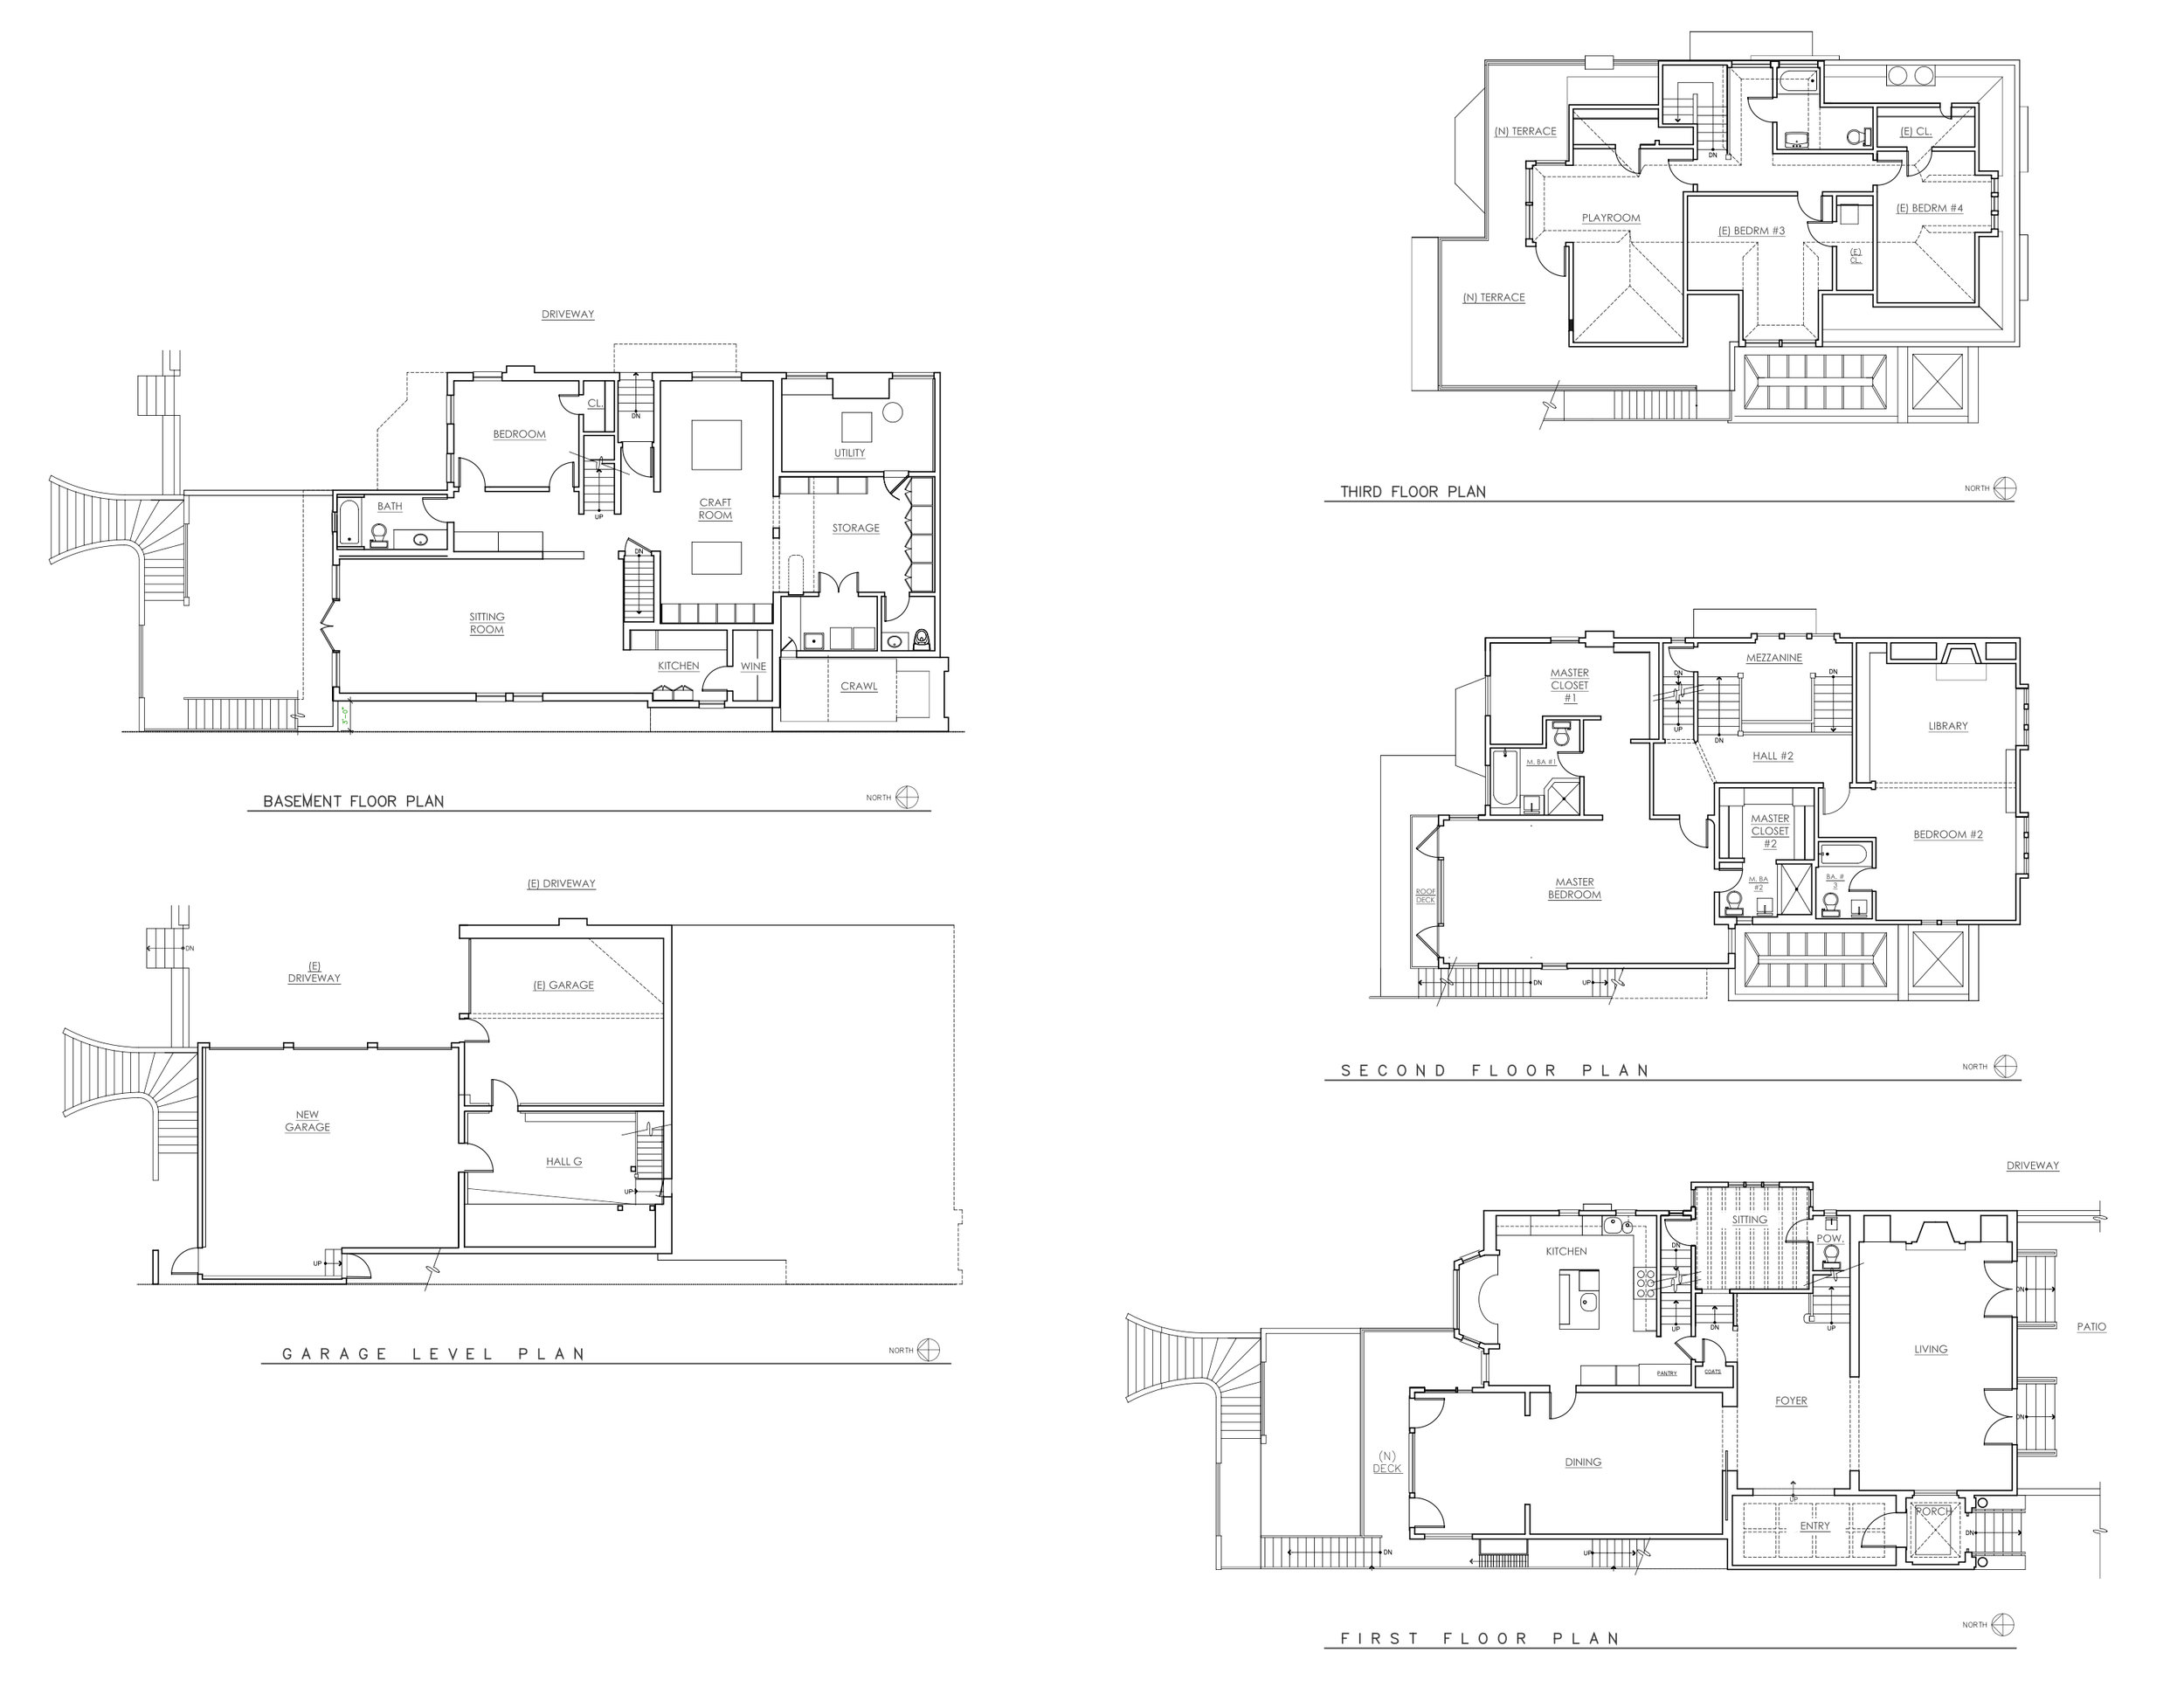 CLICK PLANS TO ENLAGE VIEW